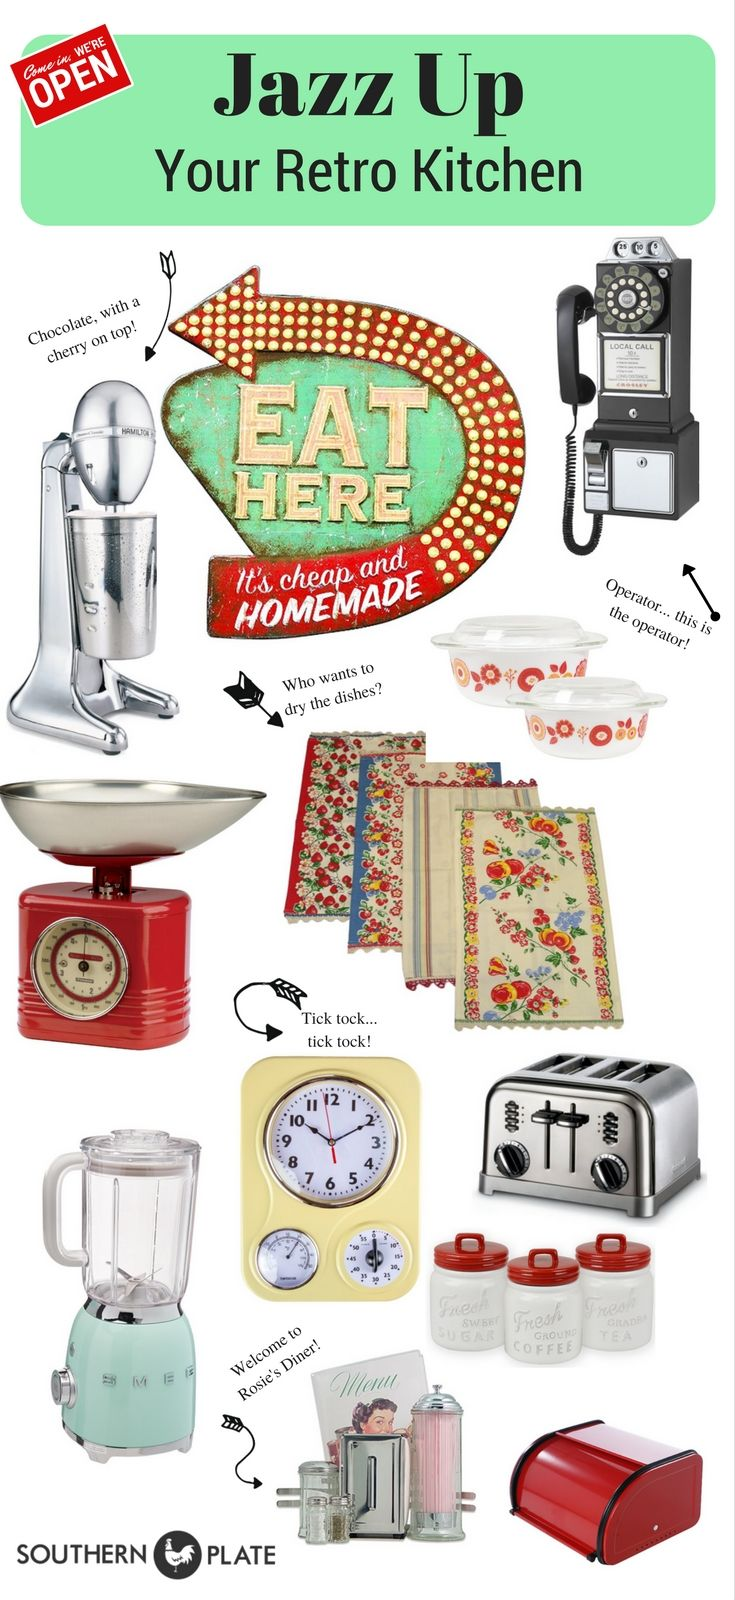 Home products company decorating ideas news amp media download contact - Retro Kitchen Decor Roundup